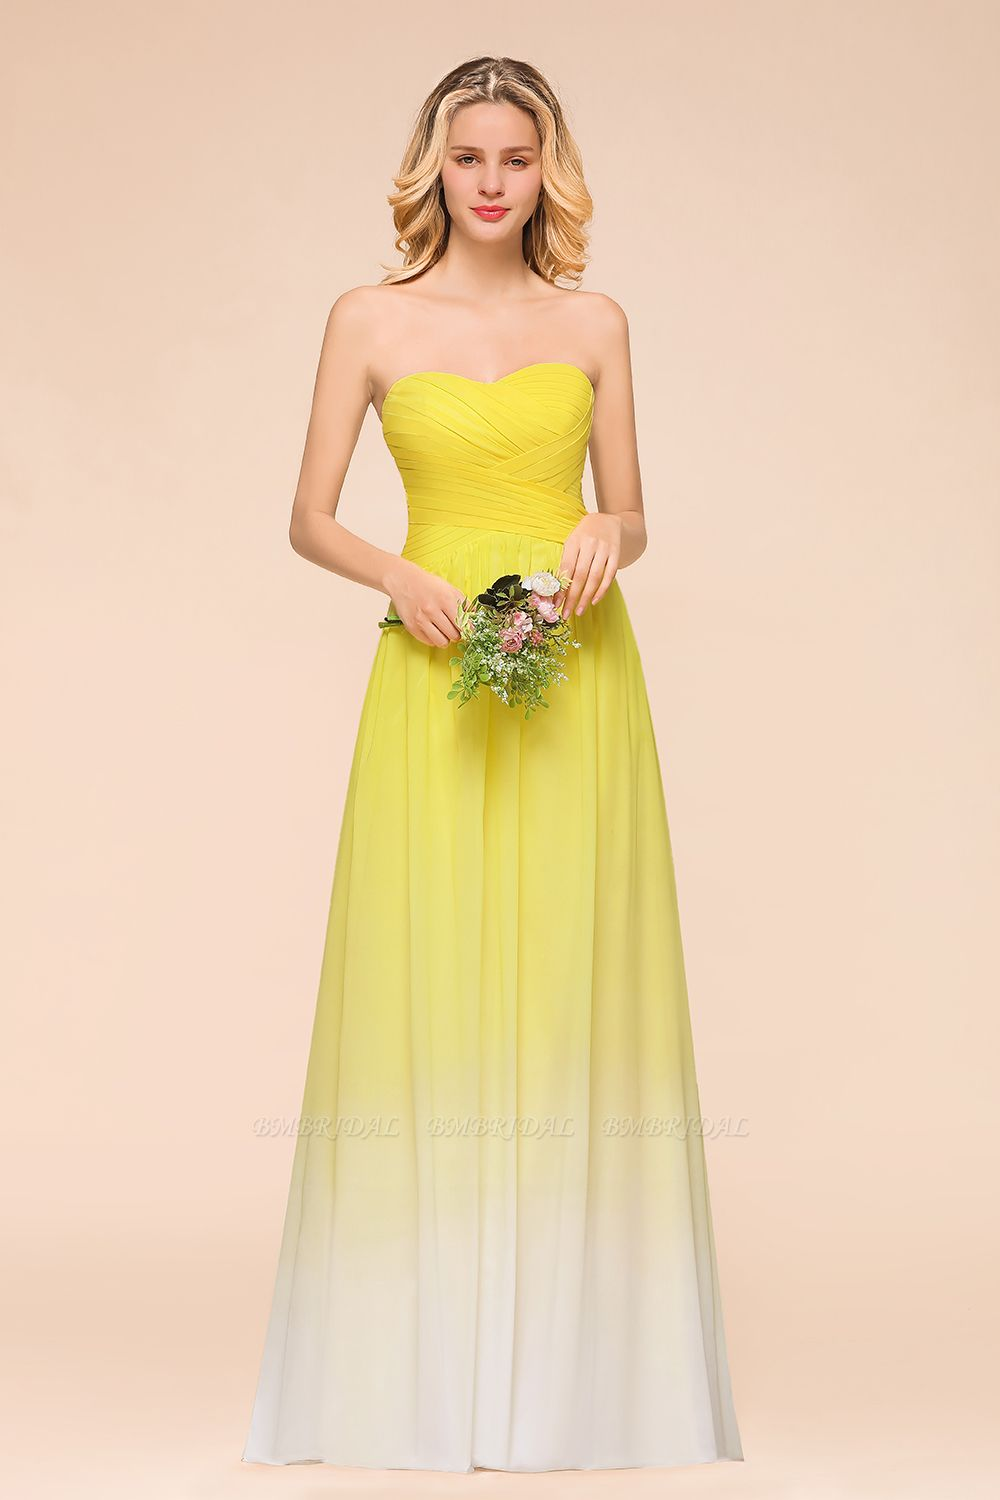 BMbridal Fashionable Sweetheart Ruffle Yellow Ombre Bridesmaid Dress